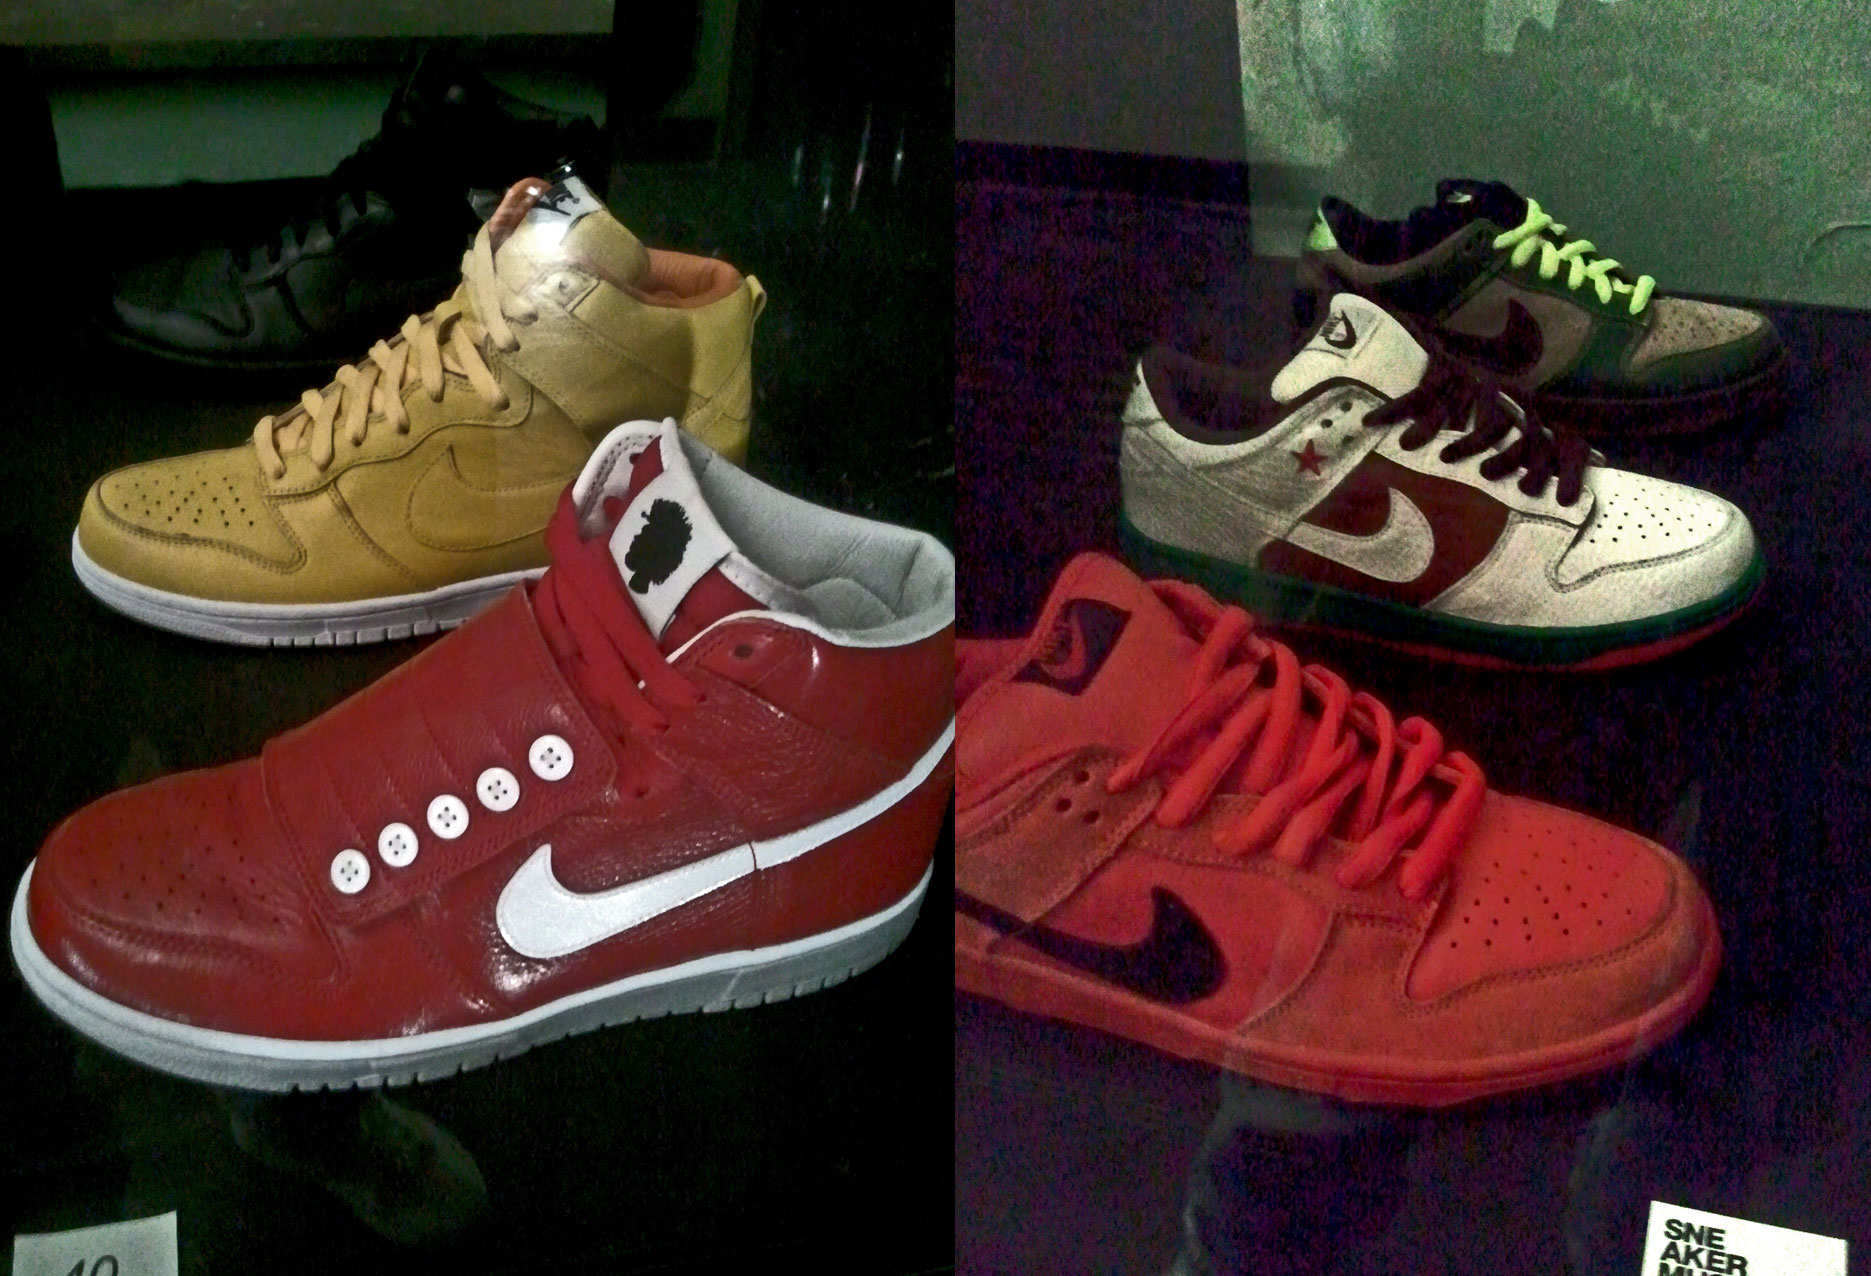 Dunk High Questlove (black, red, yellow), Dunk Low Pro SB True Red, Dunk Low Pro SB Cali, Dunk Low Pro SB Jedi